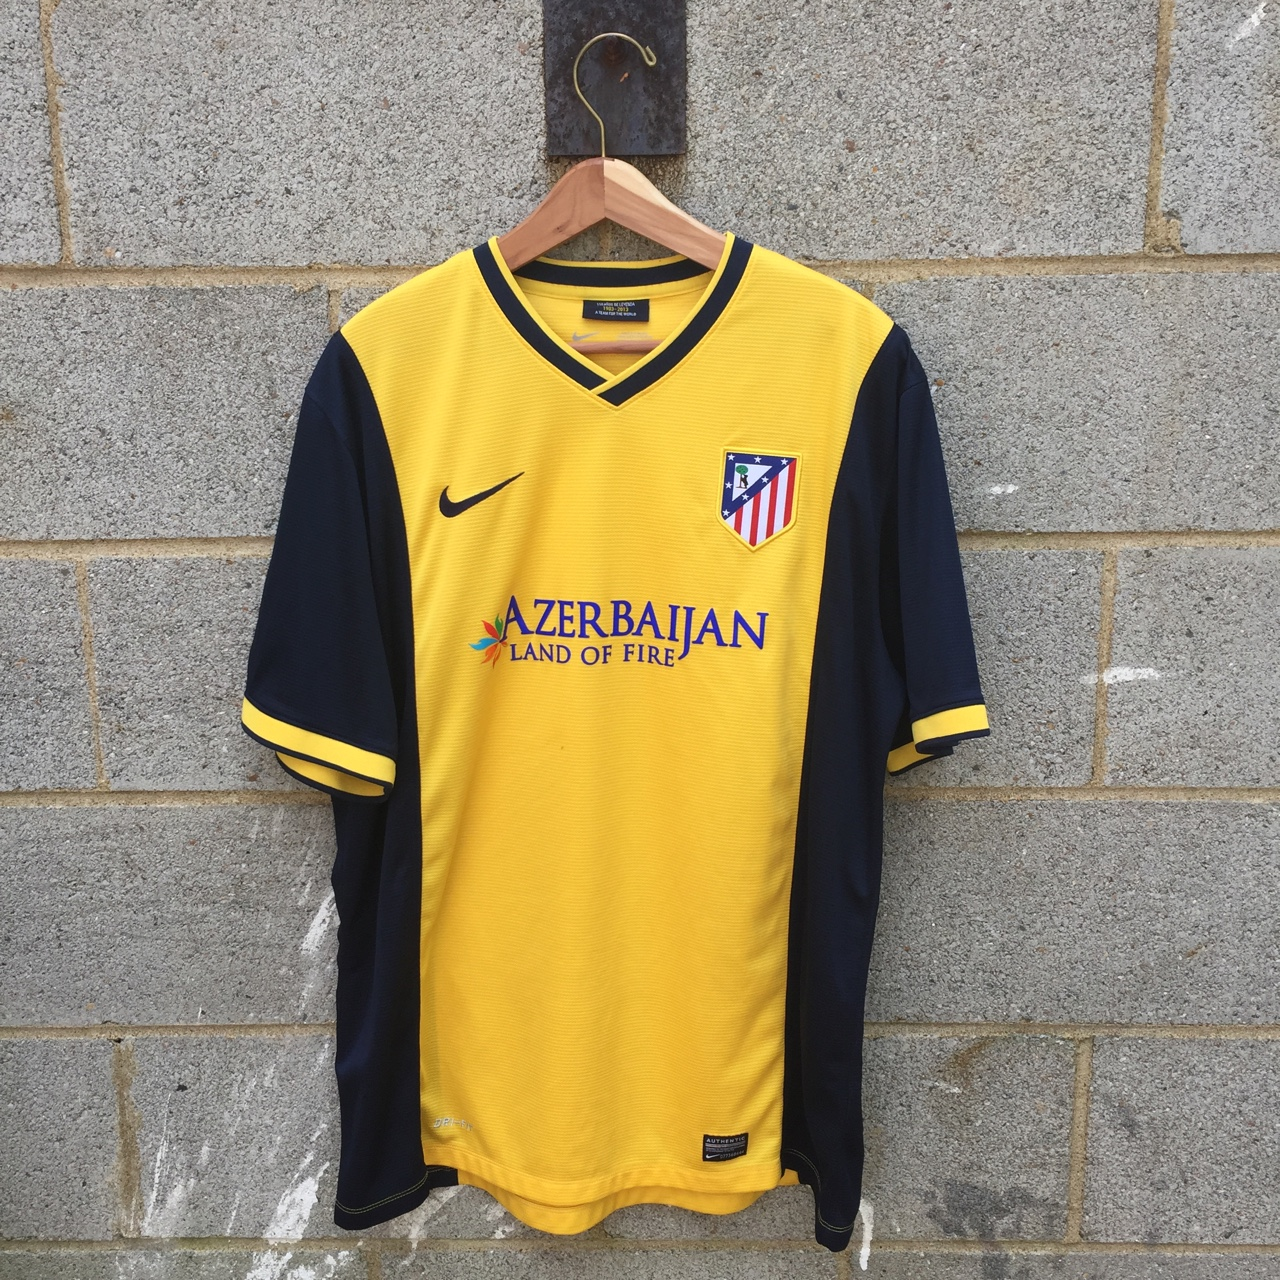 Atletico Madrid 2013 14 Away Jersey In Yellow With Depop